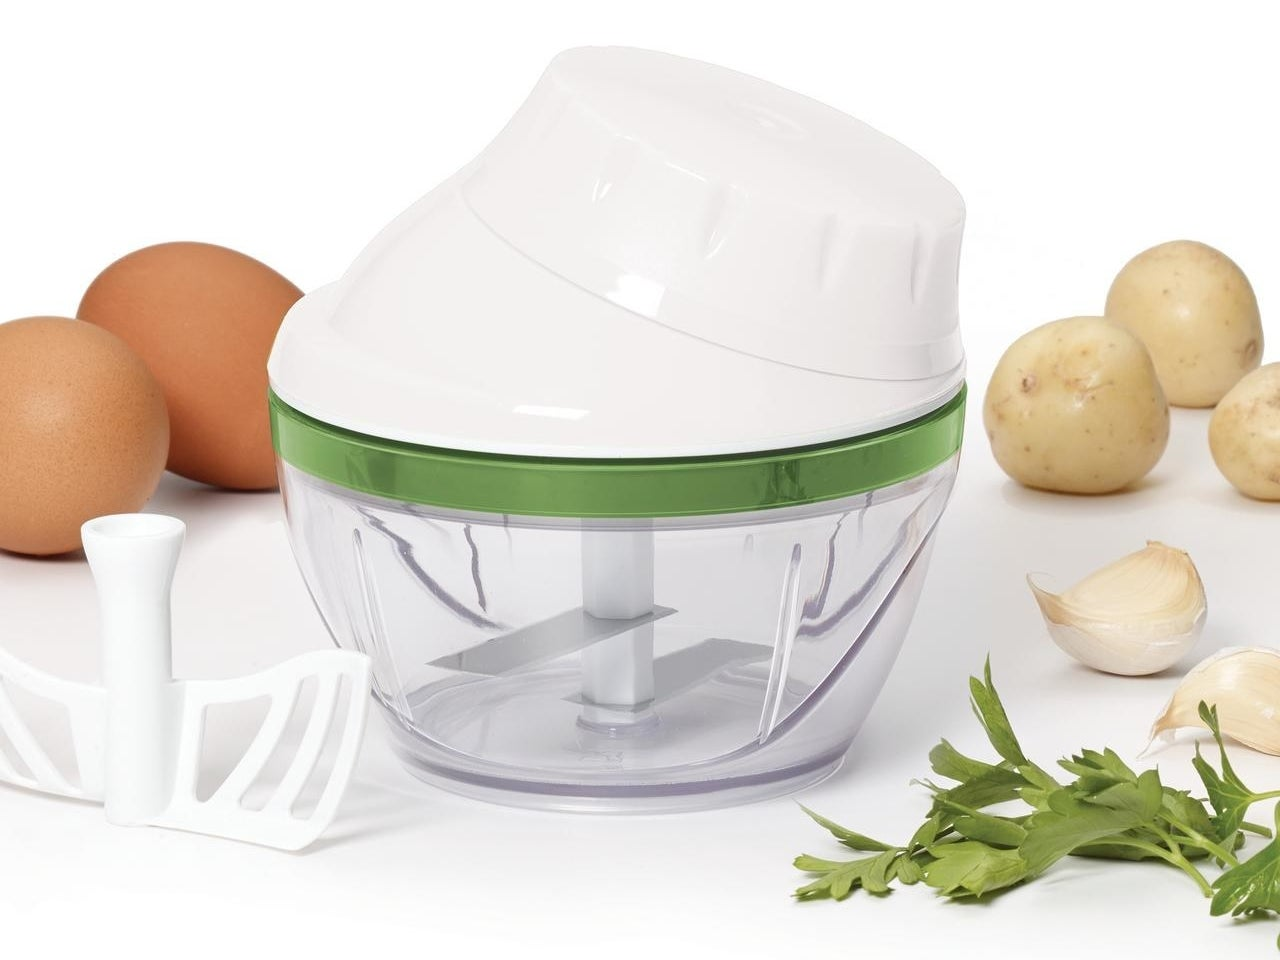 The vegetable spin chopper next to a beater attachment and surrounded by vegetables and garlic